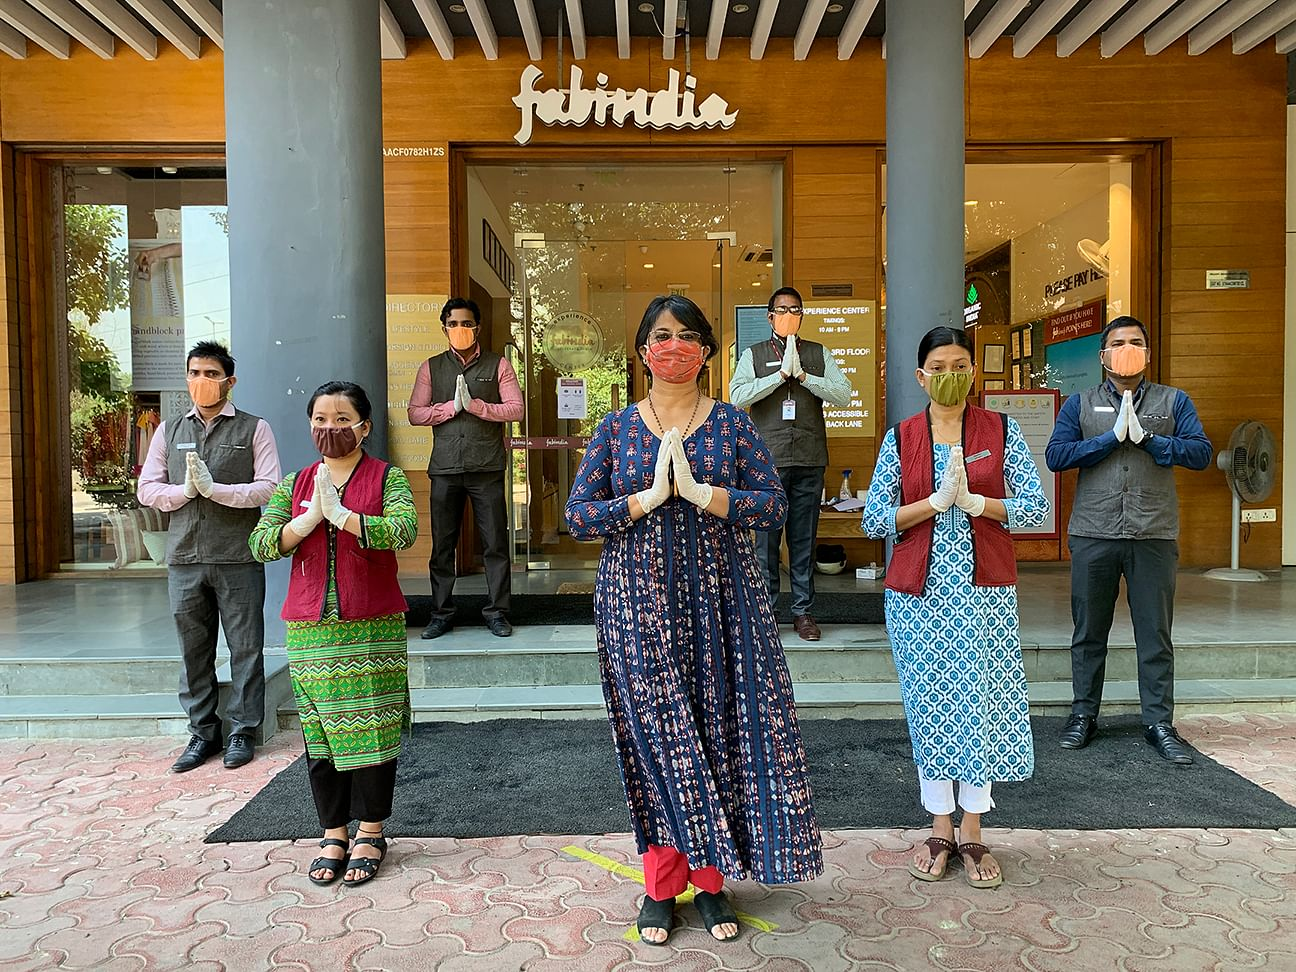 Employees display COVID-19 safety measures as they reopen the Fabindia store in Vasant Kunj, New Delhi. (Fabindia)